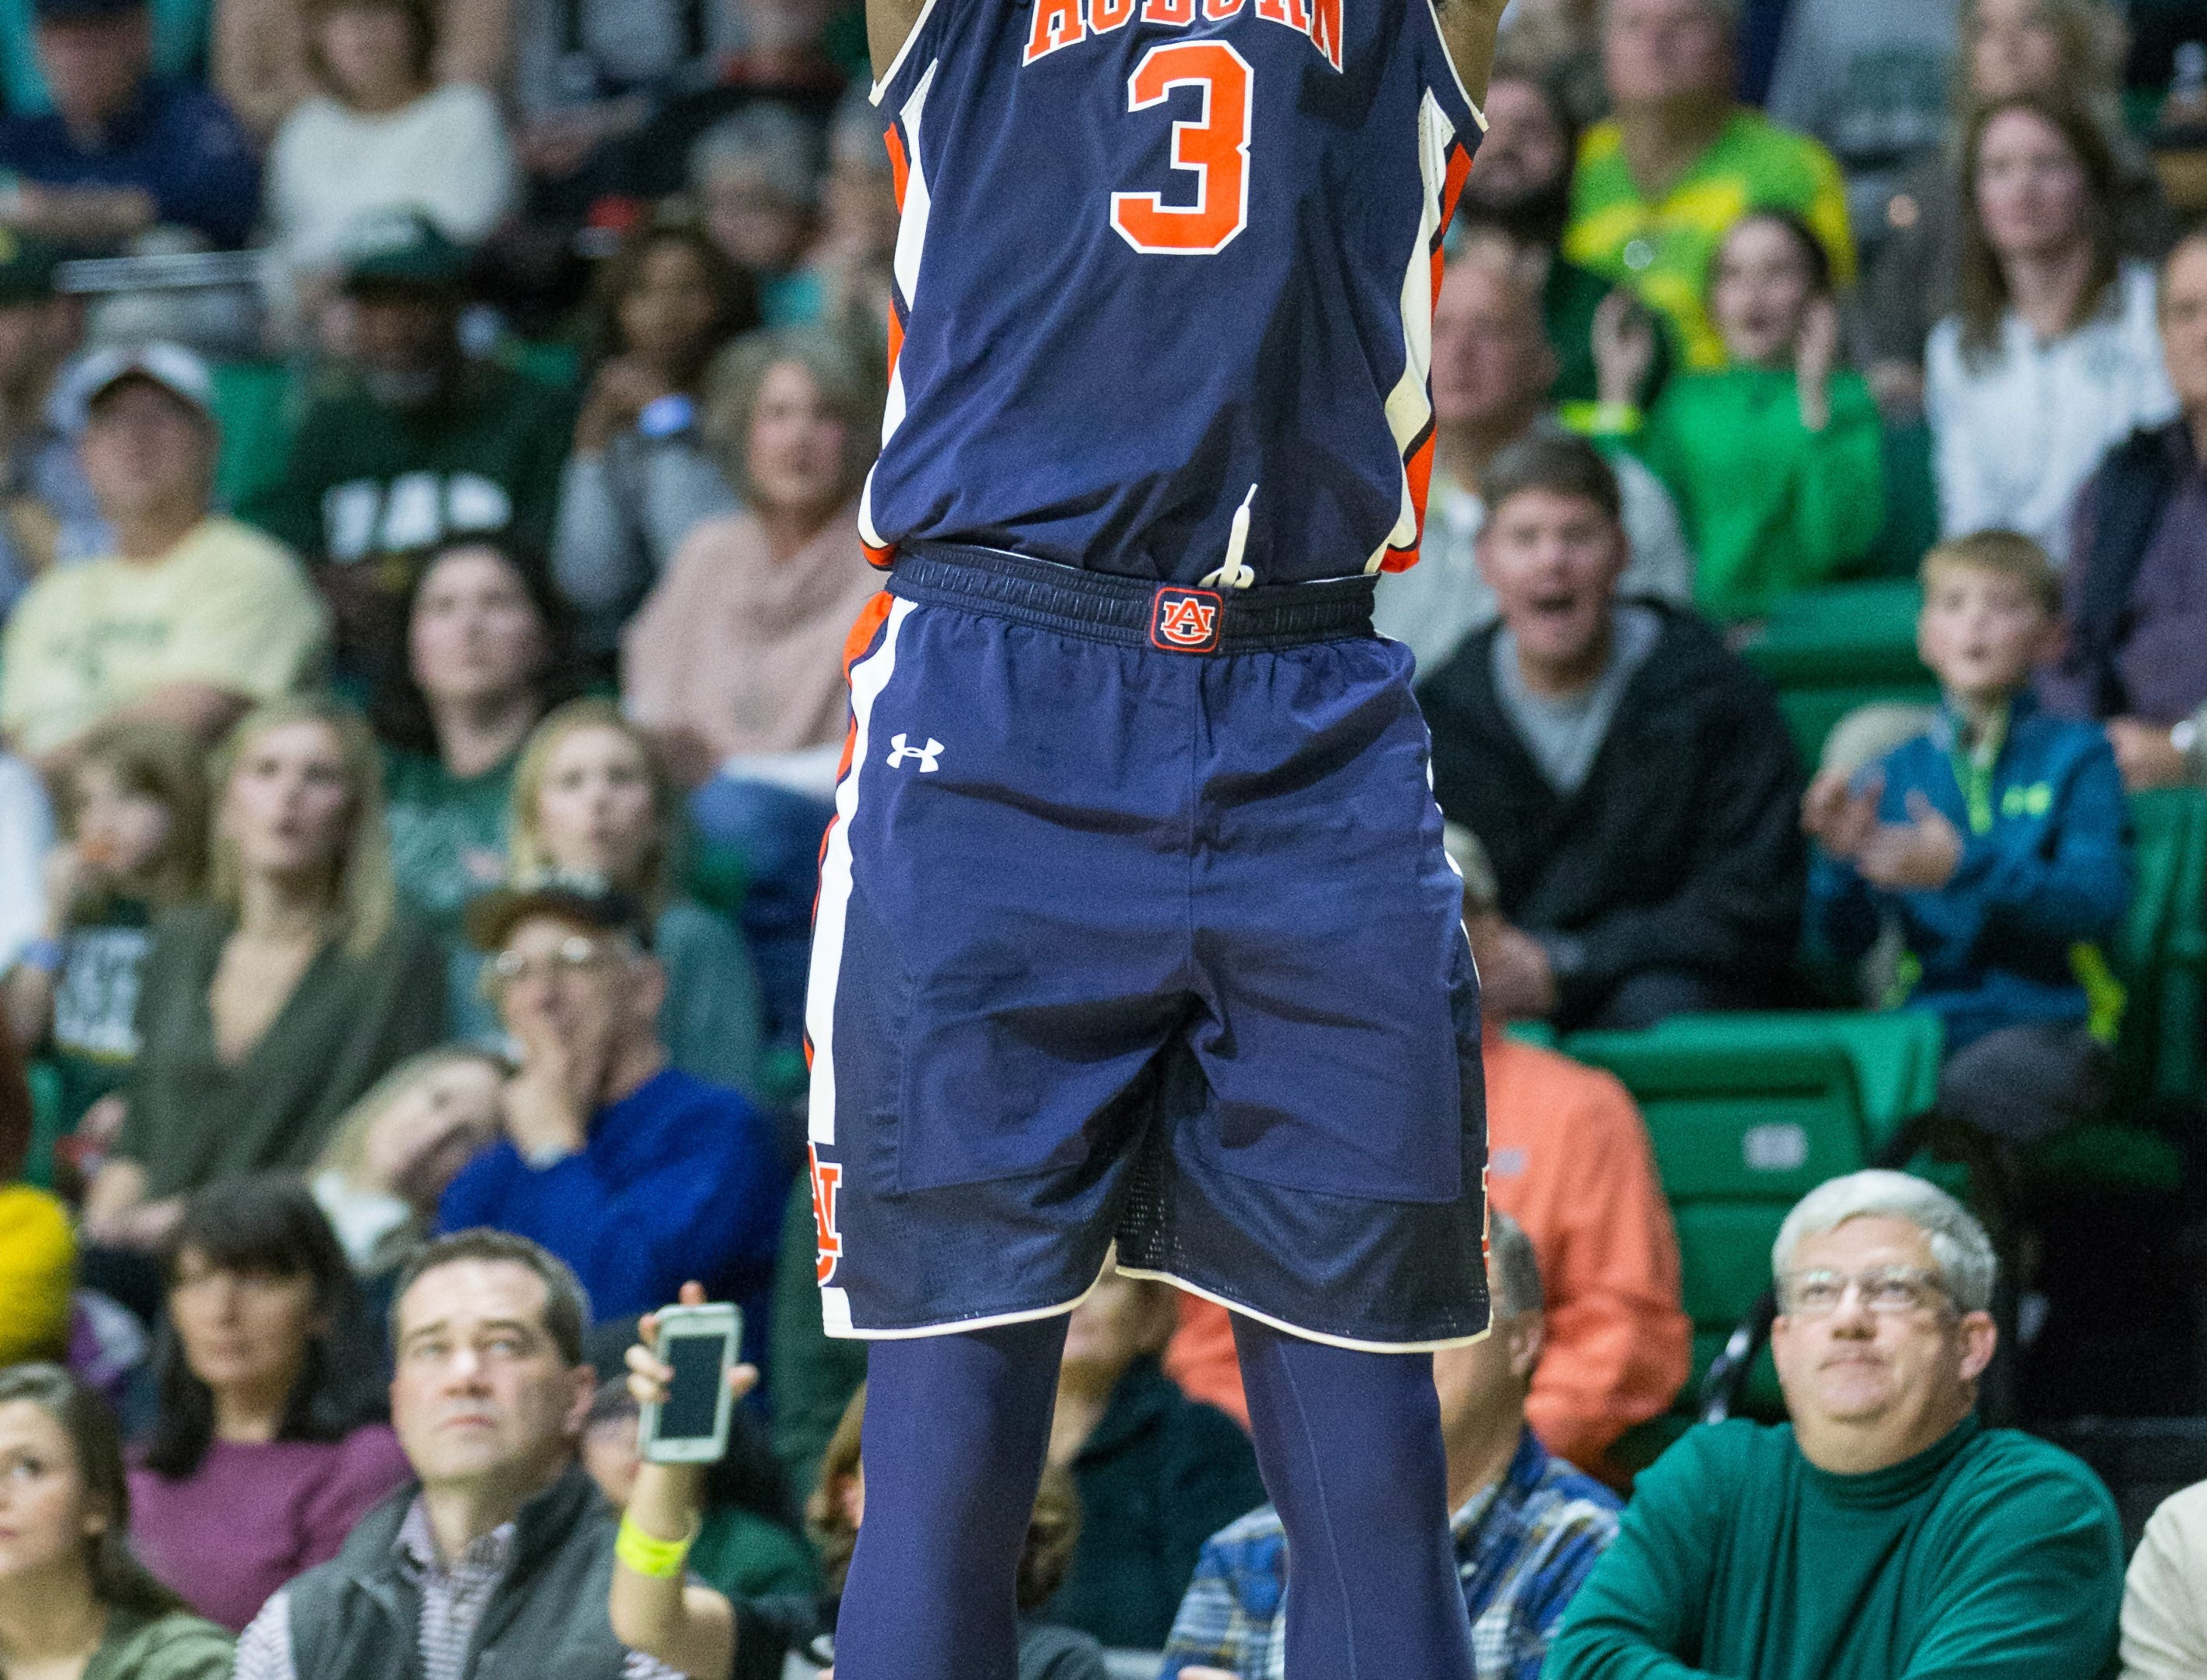 Dec 3, 2016; Birmingham, AL, USA; Auburn Tigers forward Danjel Purifoy (3) shoots against UAB Blazers at Bartow Arena. Mandatory Credit: Marvin Gentry-USA TODAY Sports